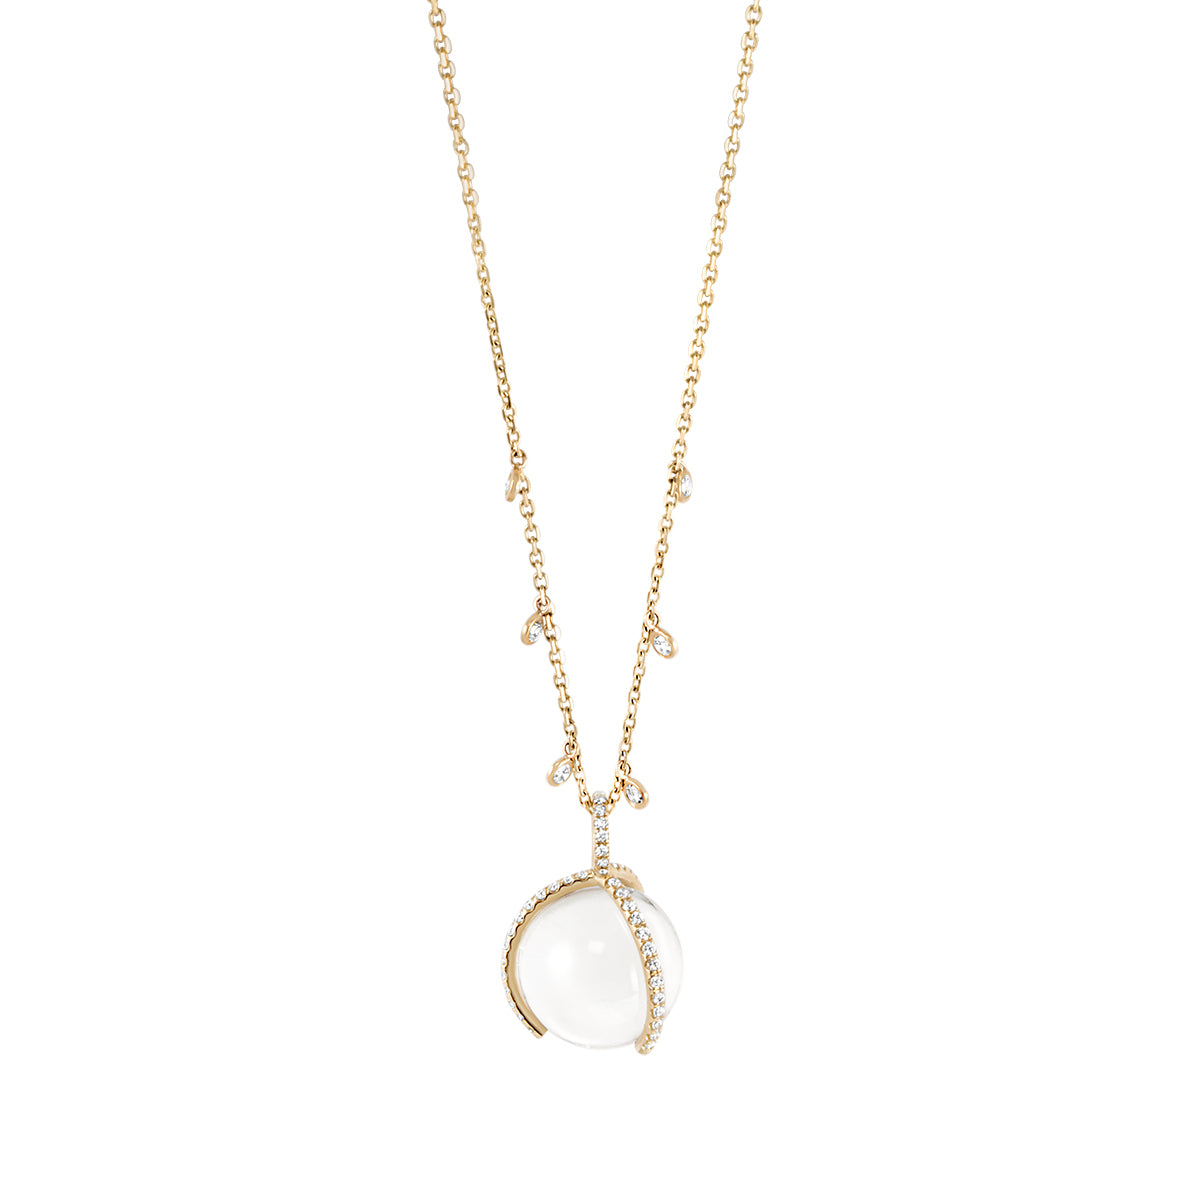 Atlas Long Necklace with Pave Prongs and Charms